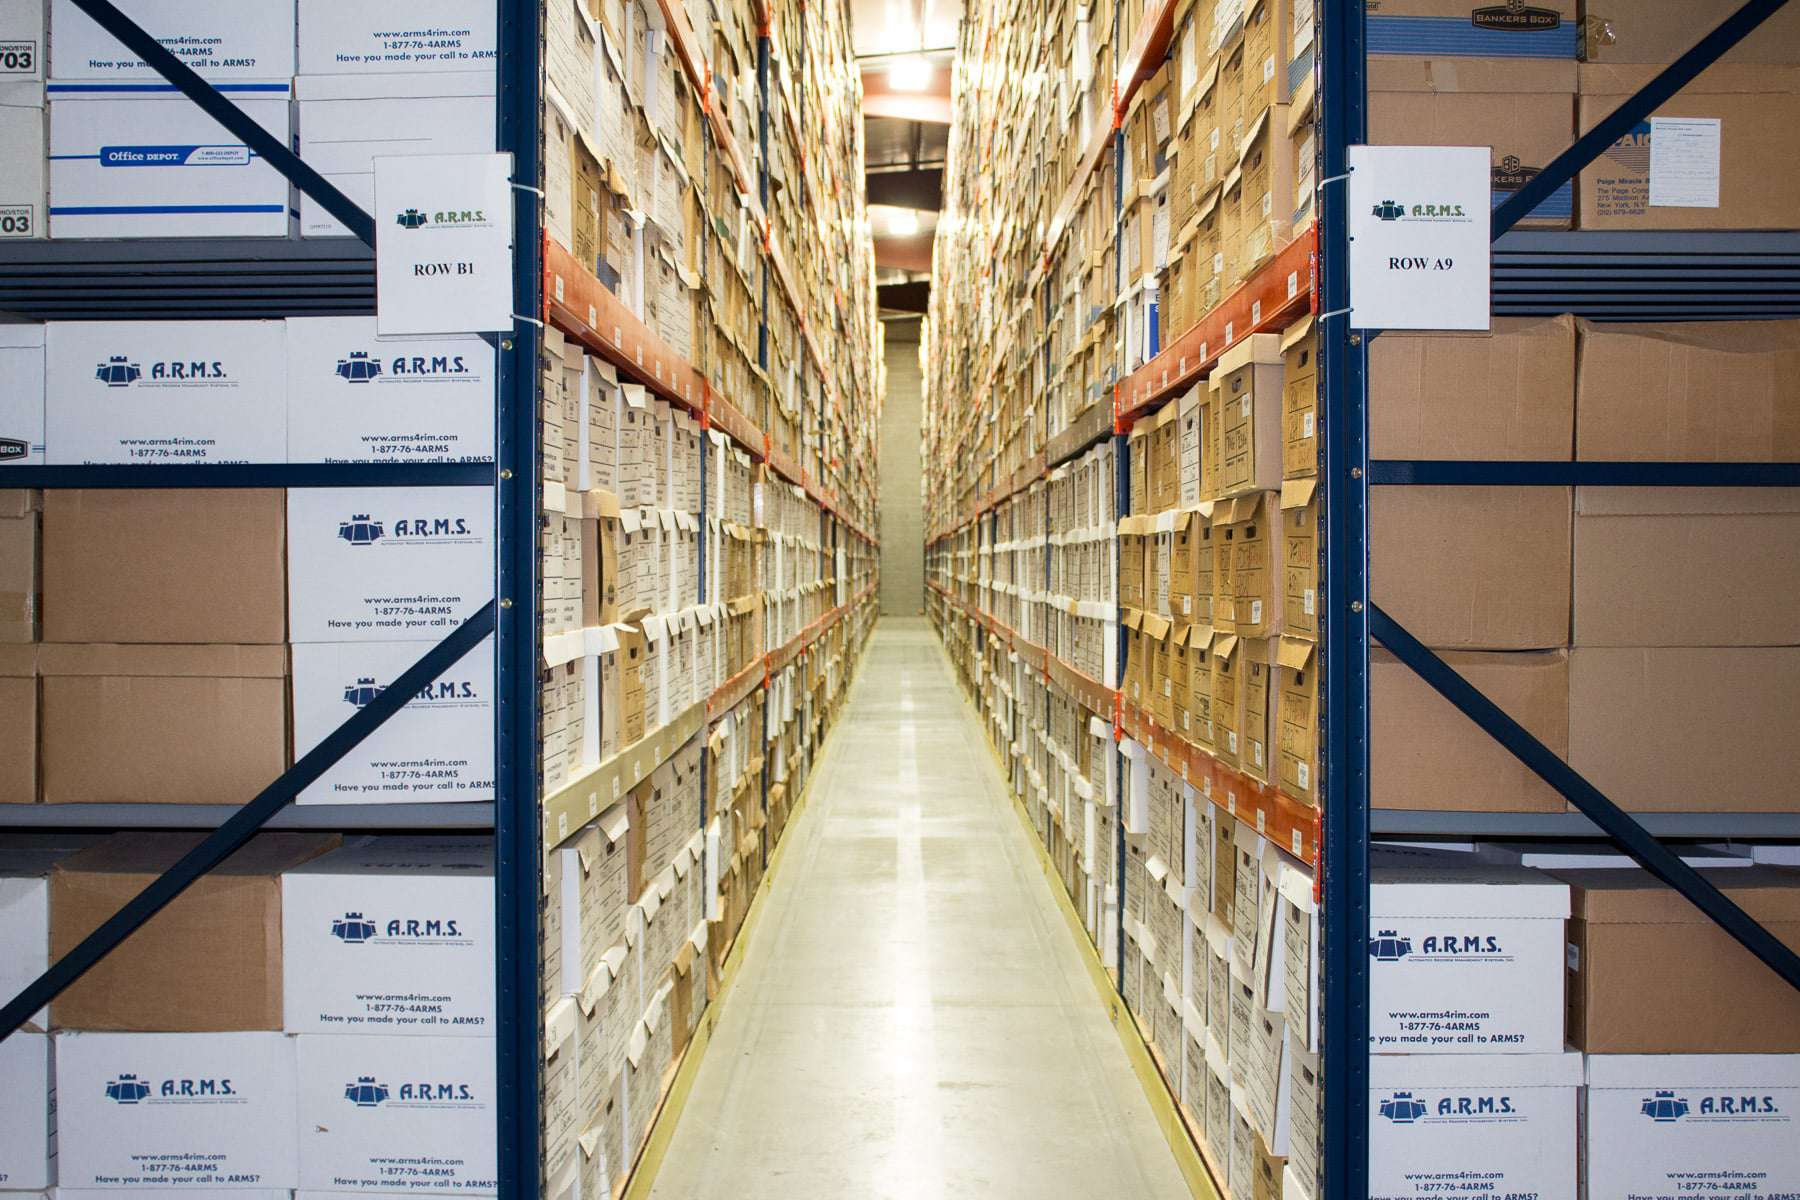 ARMS Provides Cost-Effective Records Storage Solutions